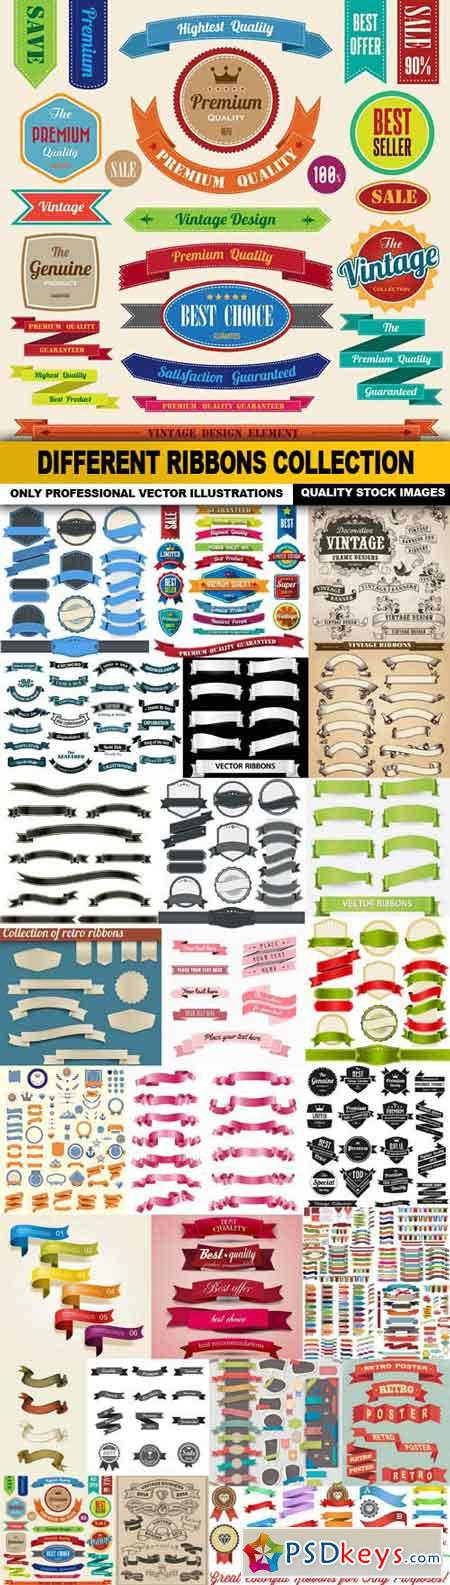 Different Ribbons Collection - 25 Vector